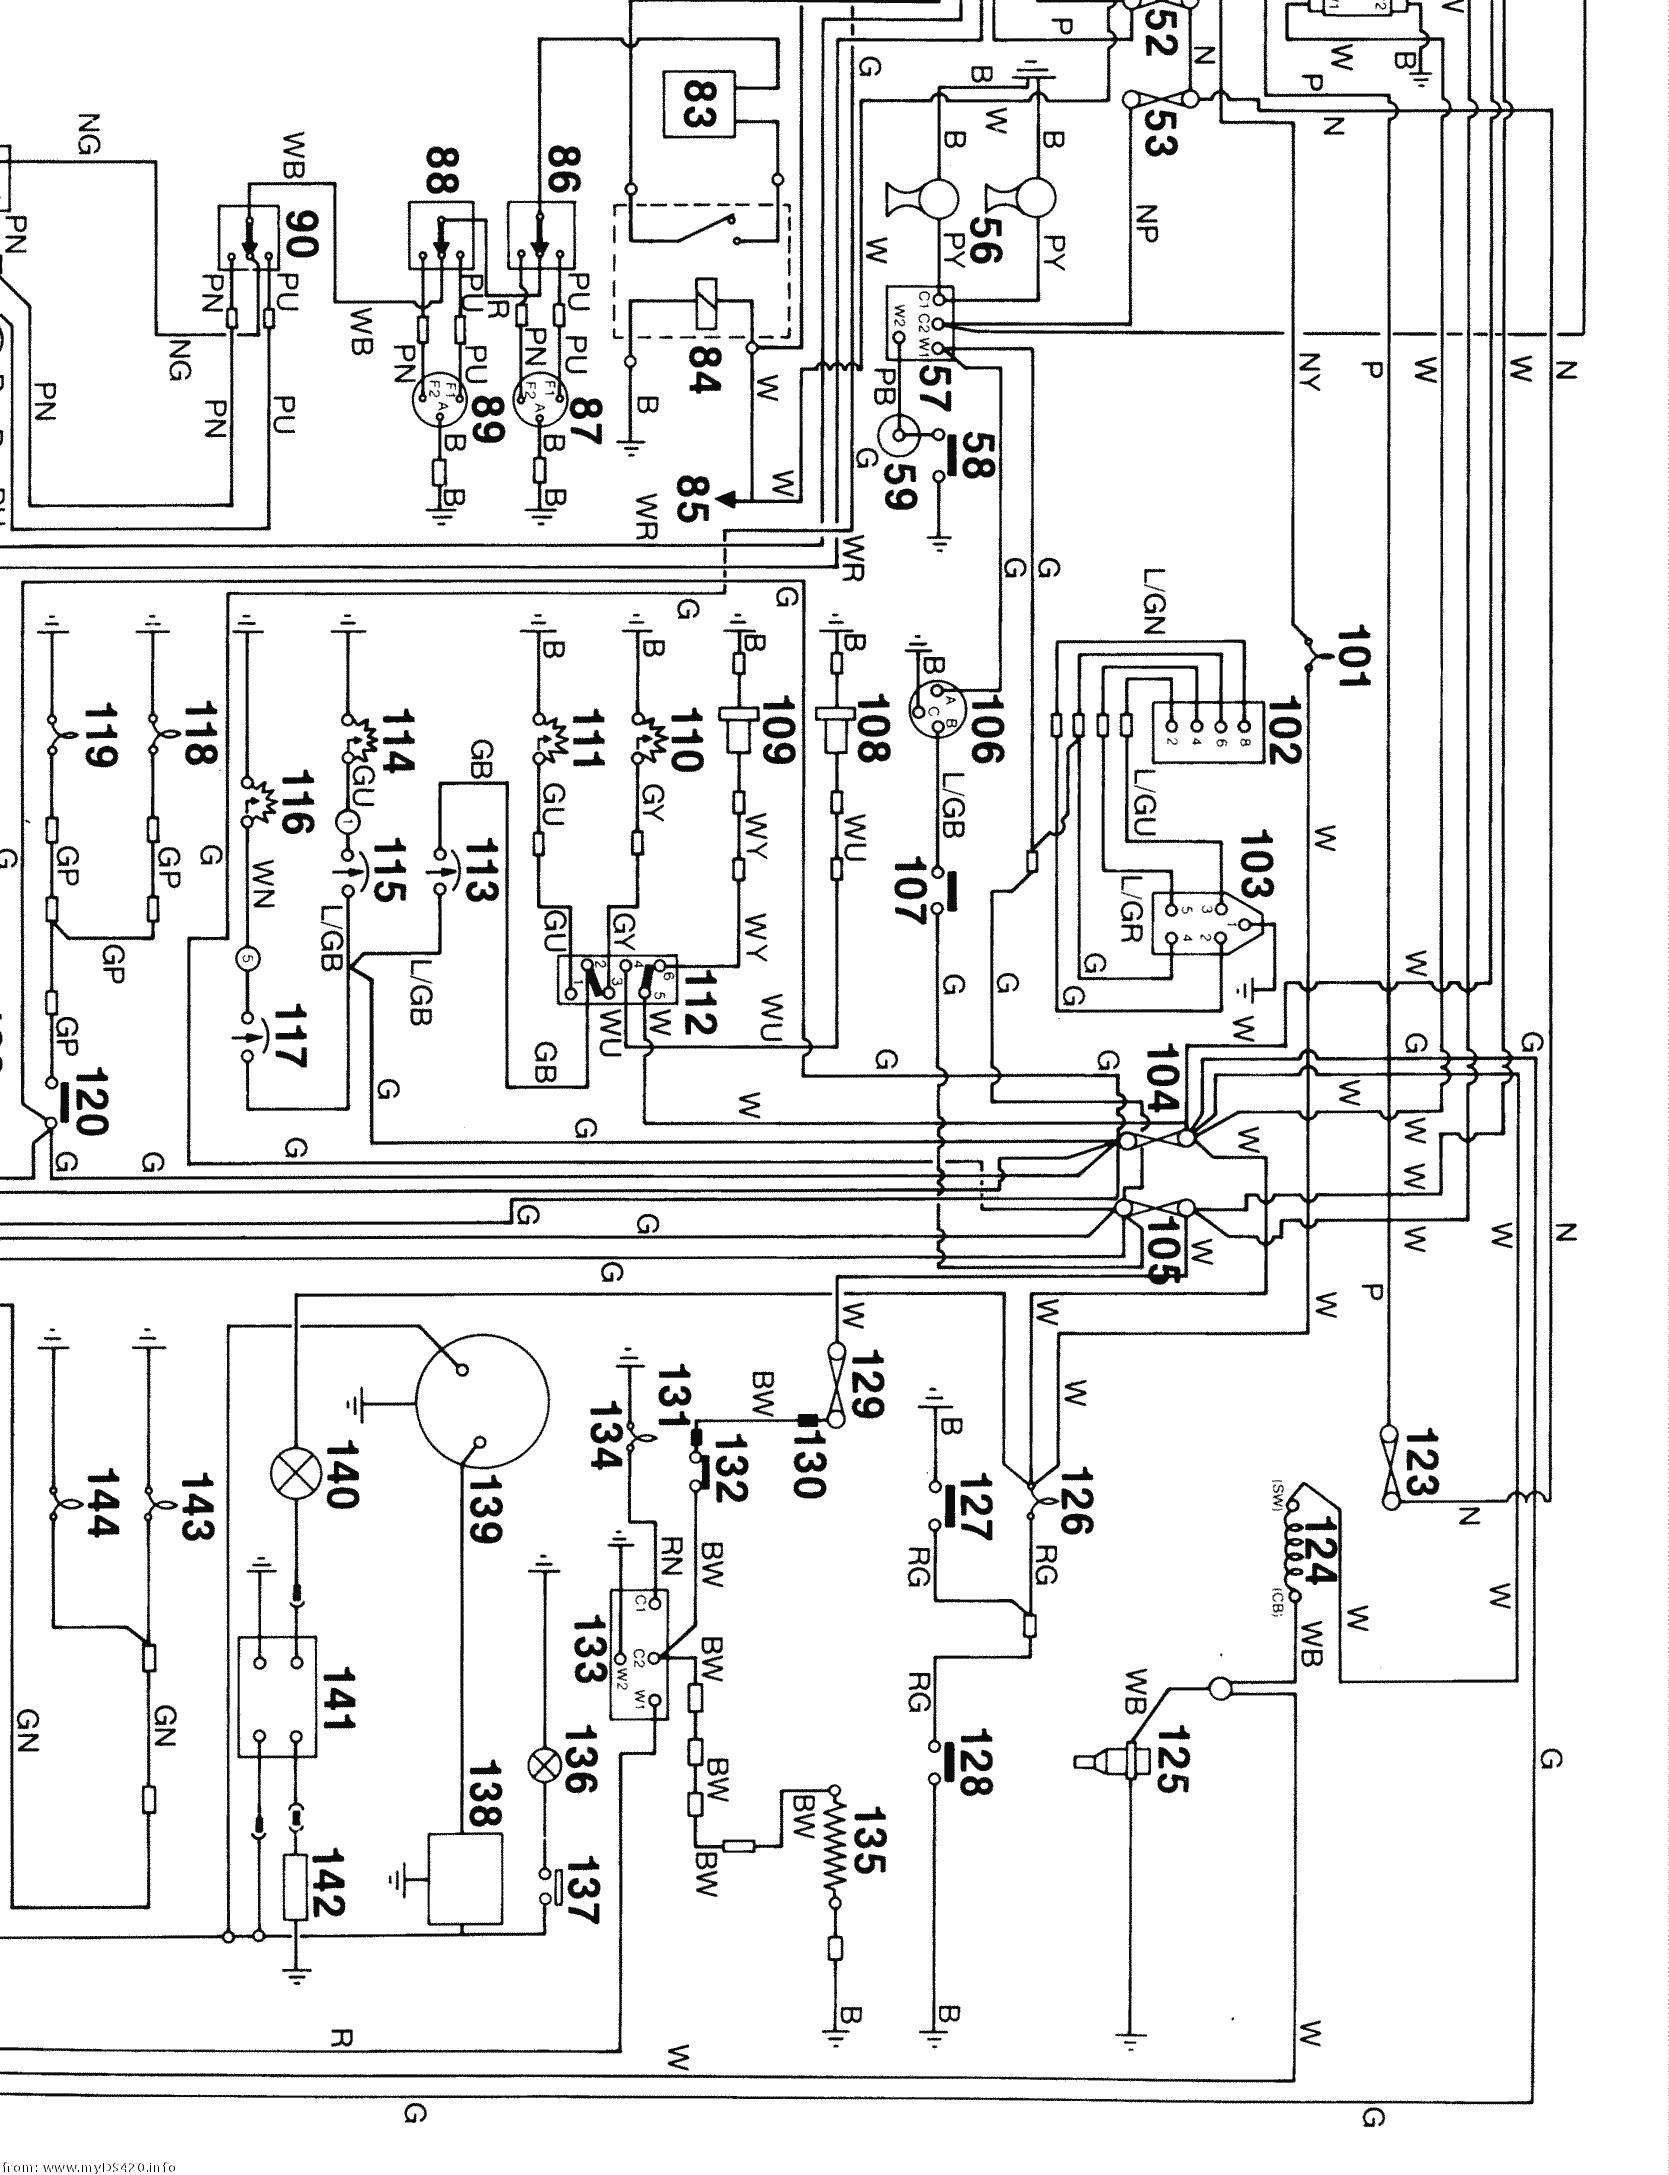 Honda Mr 250 Wiring Diagram. Honda. Auto Wiring Diagram